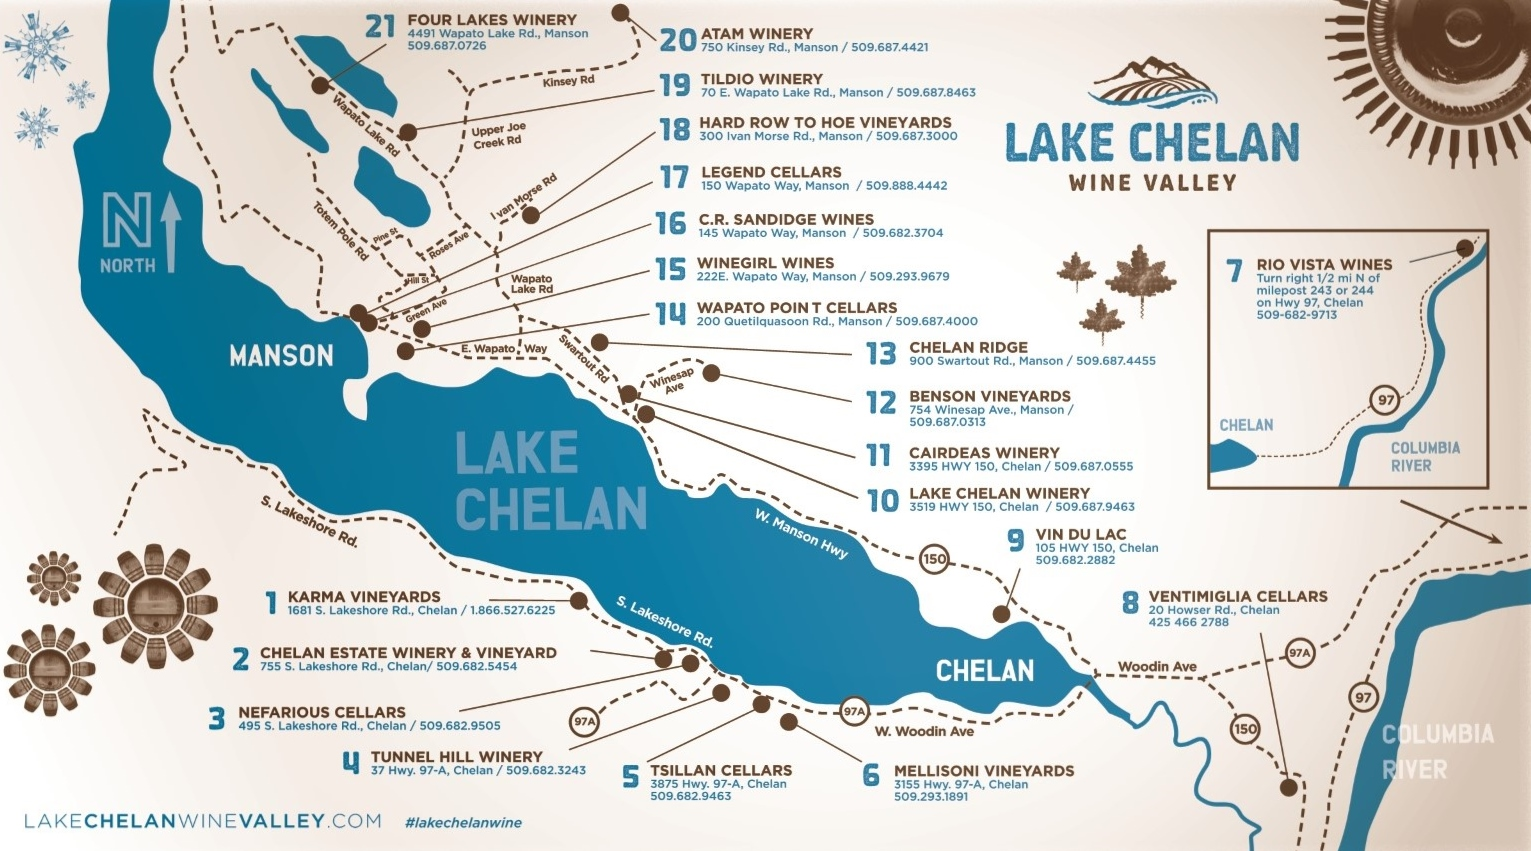 Visit the Lake Chelan Wine Valley